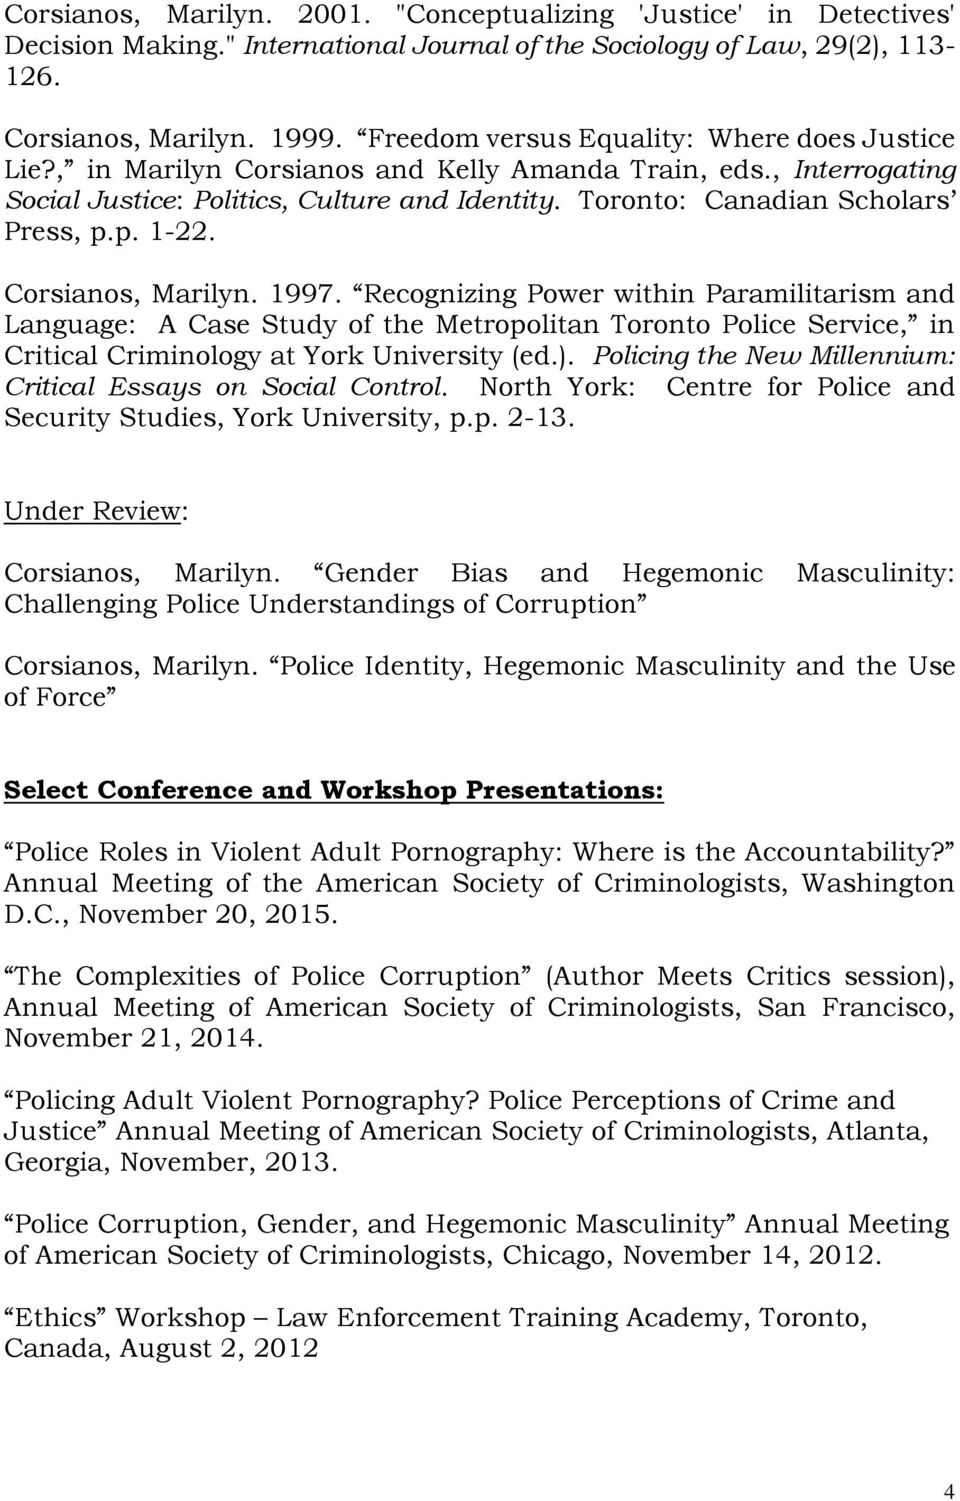 p. 1-22. Corsianos, Marilyn. 1997. Recognizing Power within Paramilitarism and Language: A Case Study of the Metropolitan Toronto Police Service, in Critical Criminology at York University (ed.).